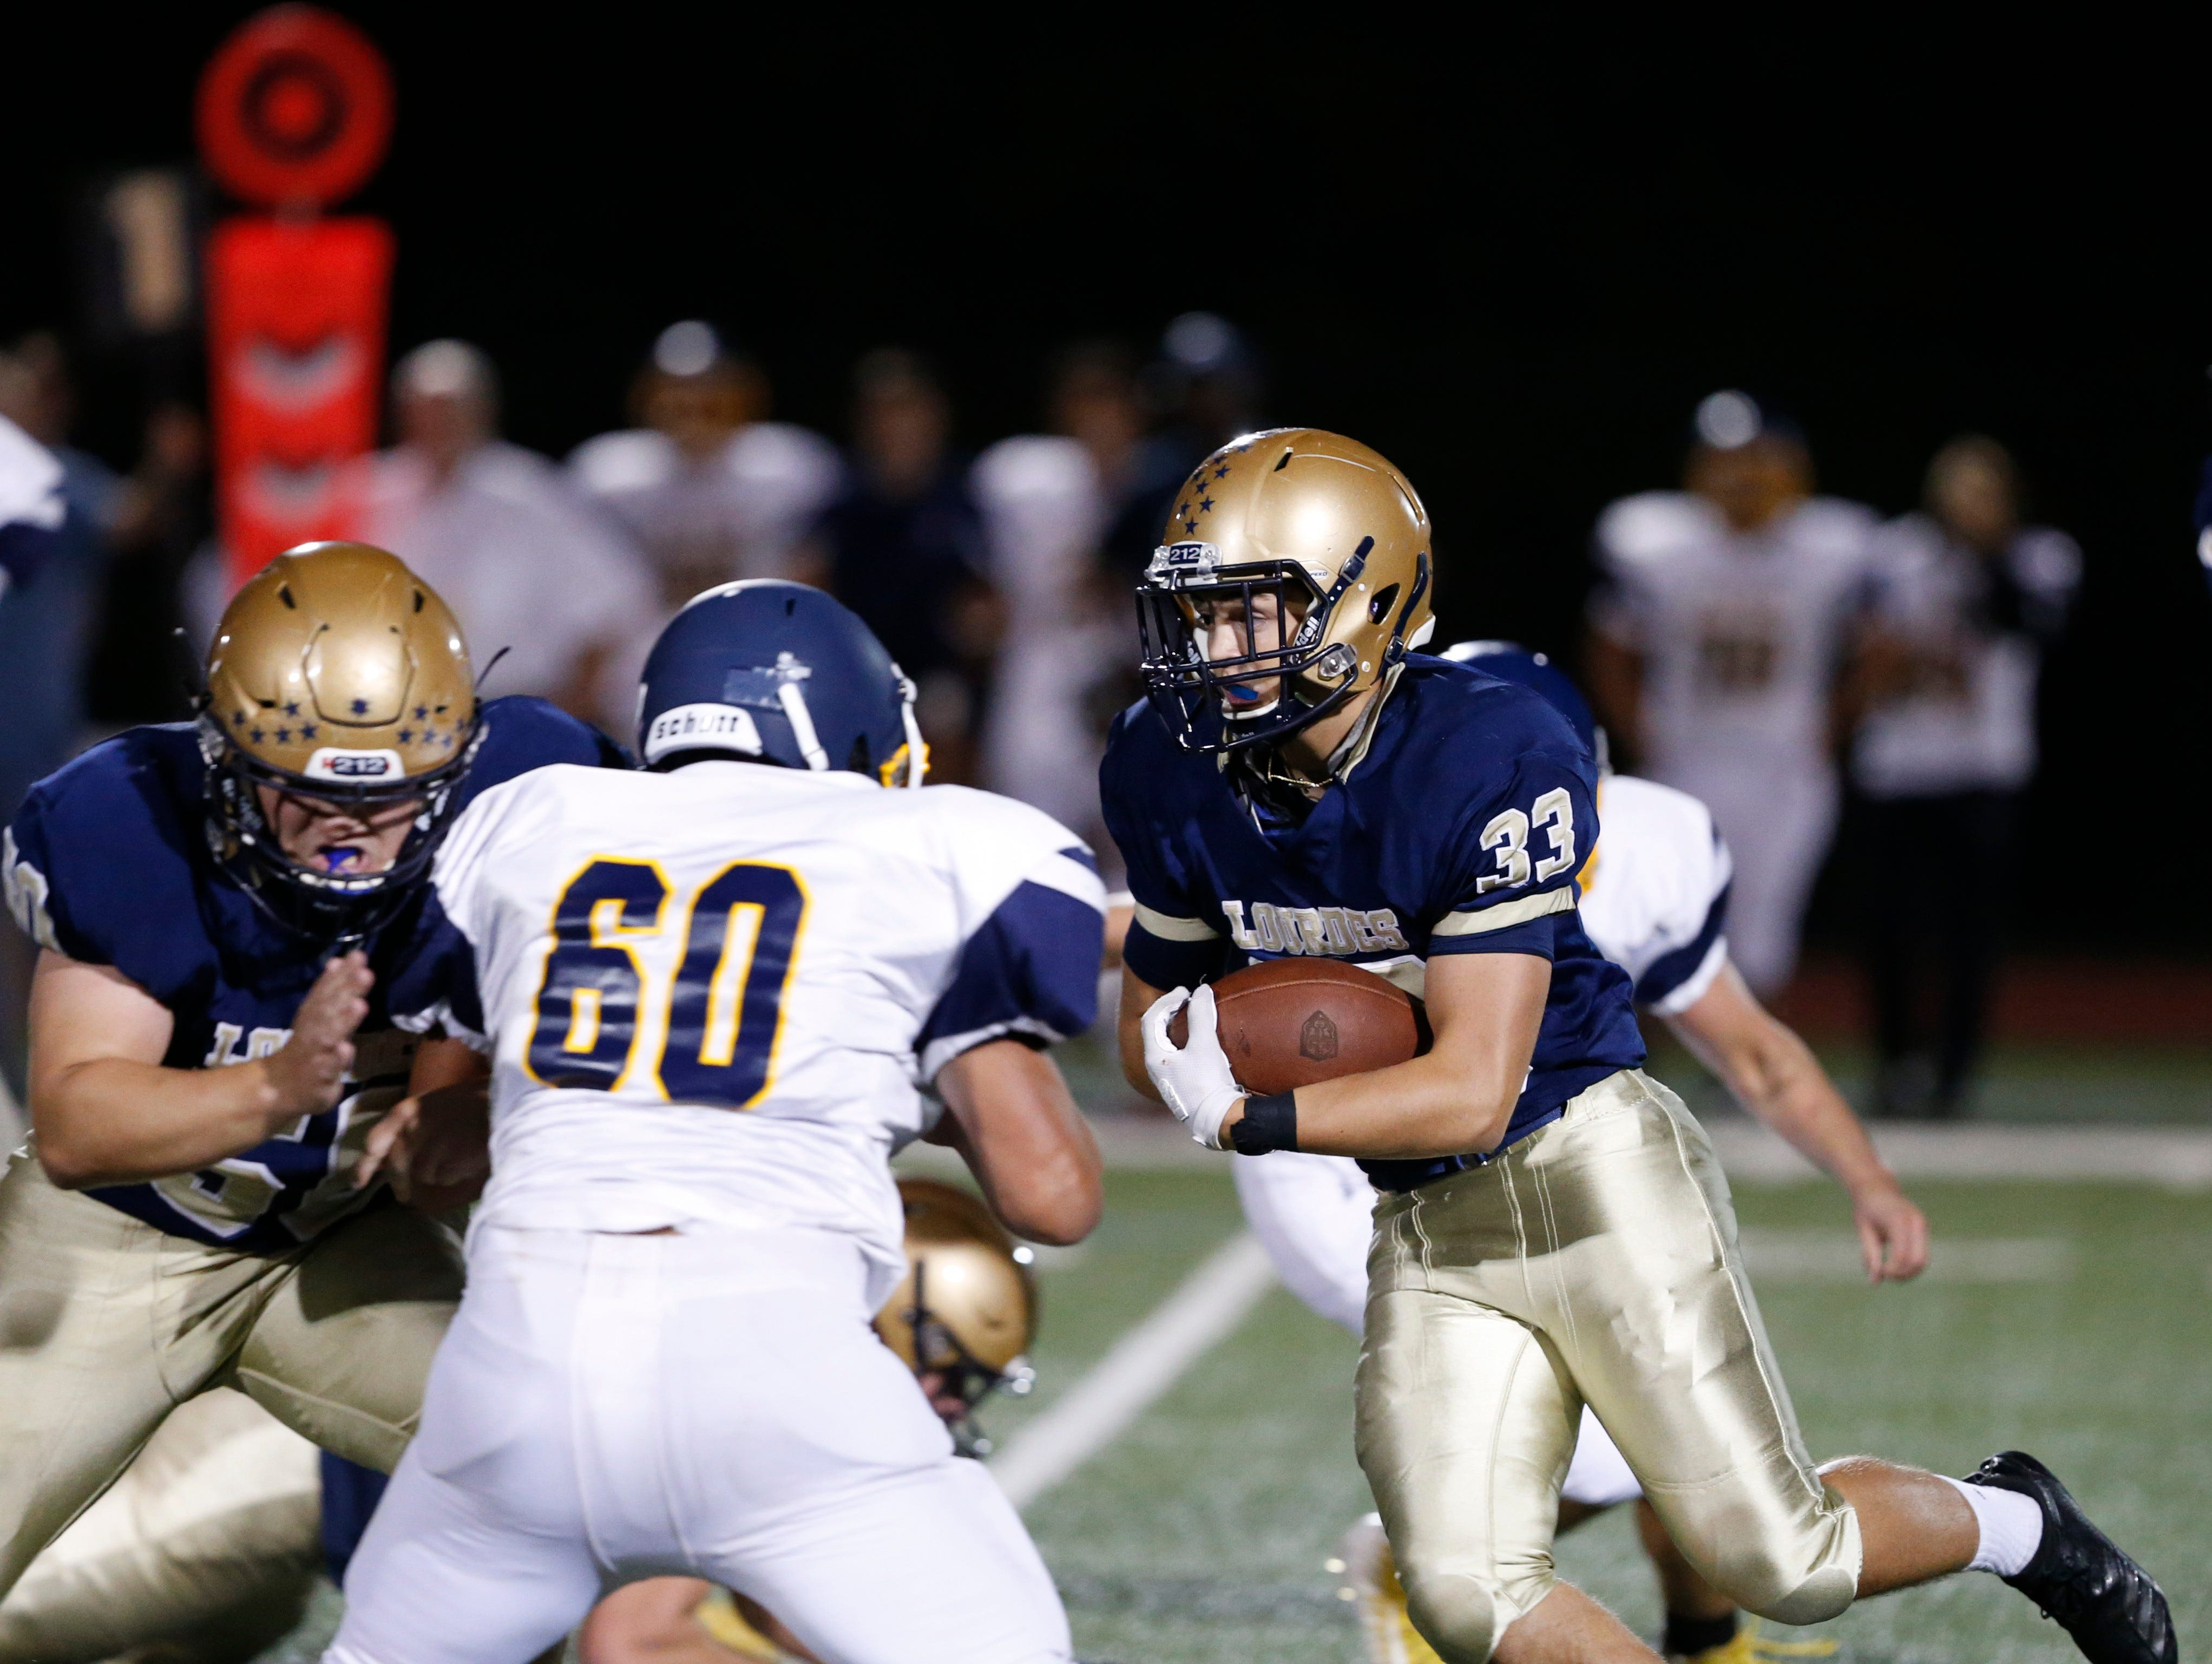 Lourdes' Connor Gioia finds a hole created by Kevin Johansson blocking Panas' William Calderon during Friday night's game at Lourdes on Sept. 21, 2018.